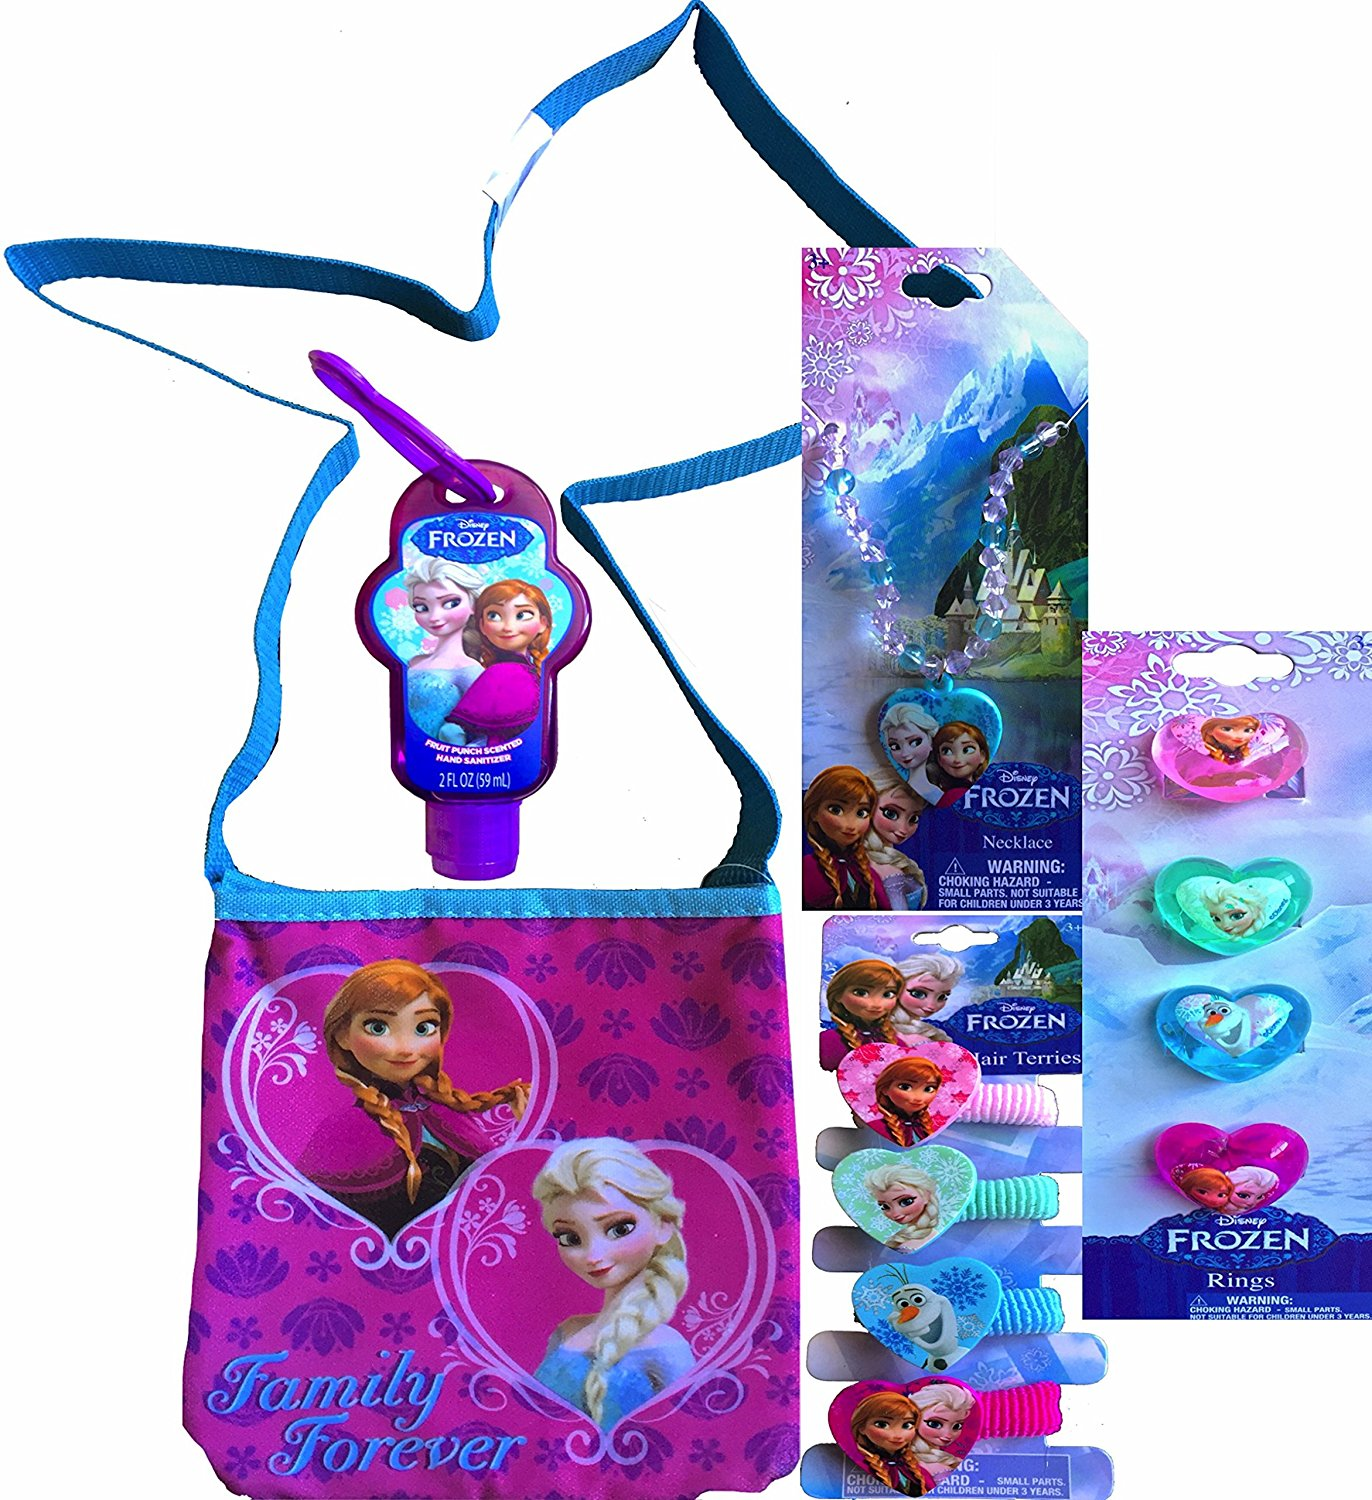 Disney Frozen Mini Bag with Accessories Includes Disney Frozen Necklace Disney Frozen Rings and Disney Frozen Hair Terries with Handy Clip on Hand Sanitizer